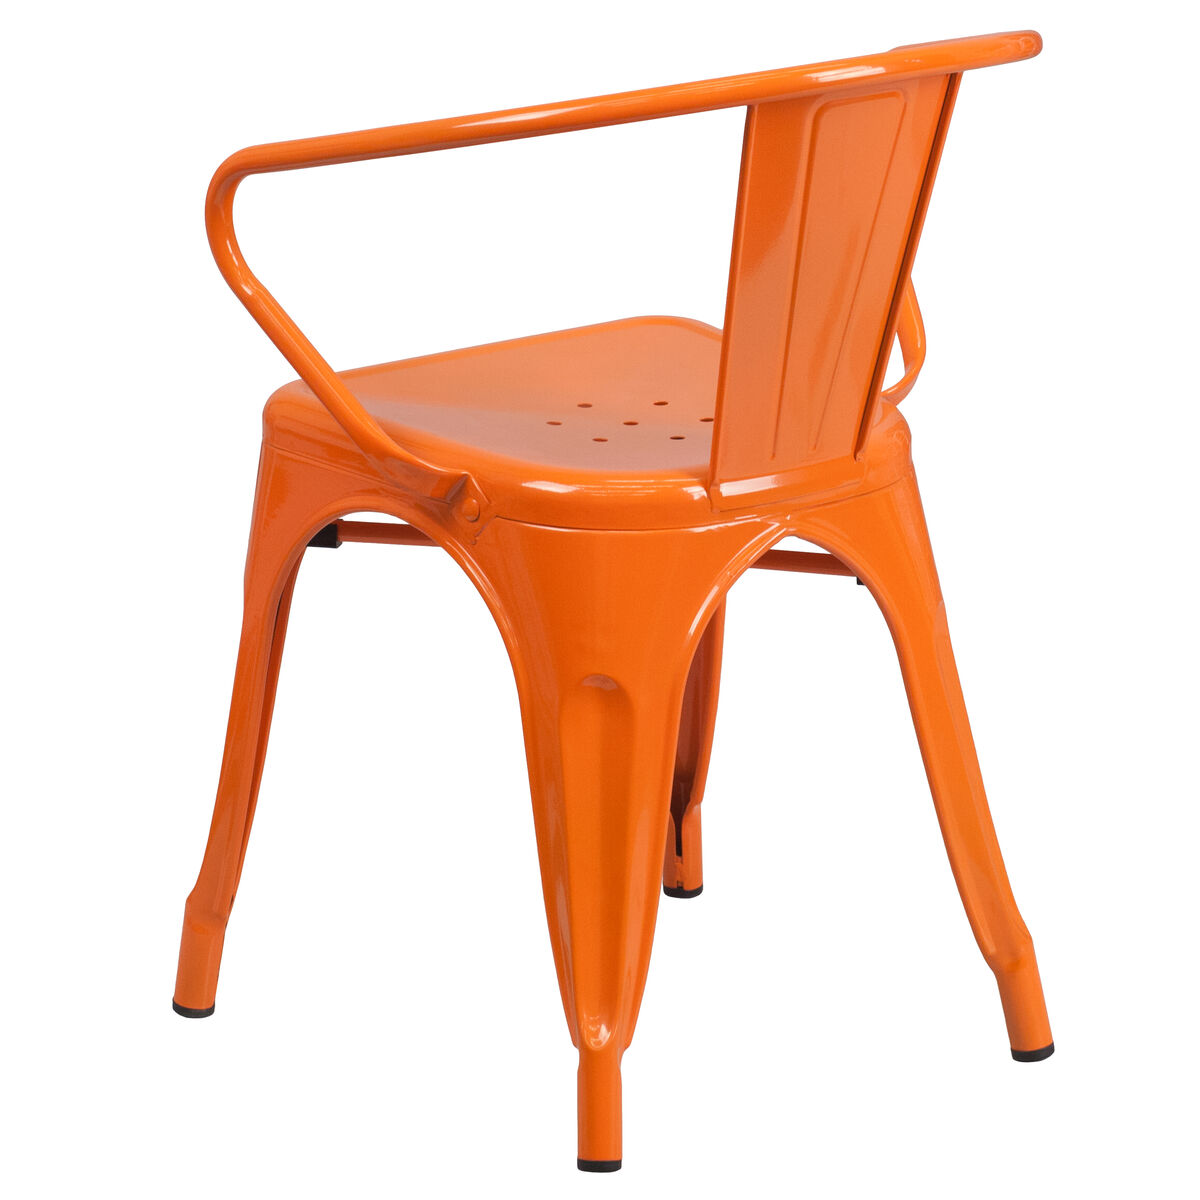 Our Orange Metal Indoor Outdoor Chair With Arms Is On Now